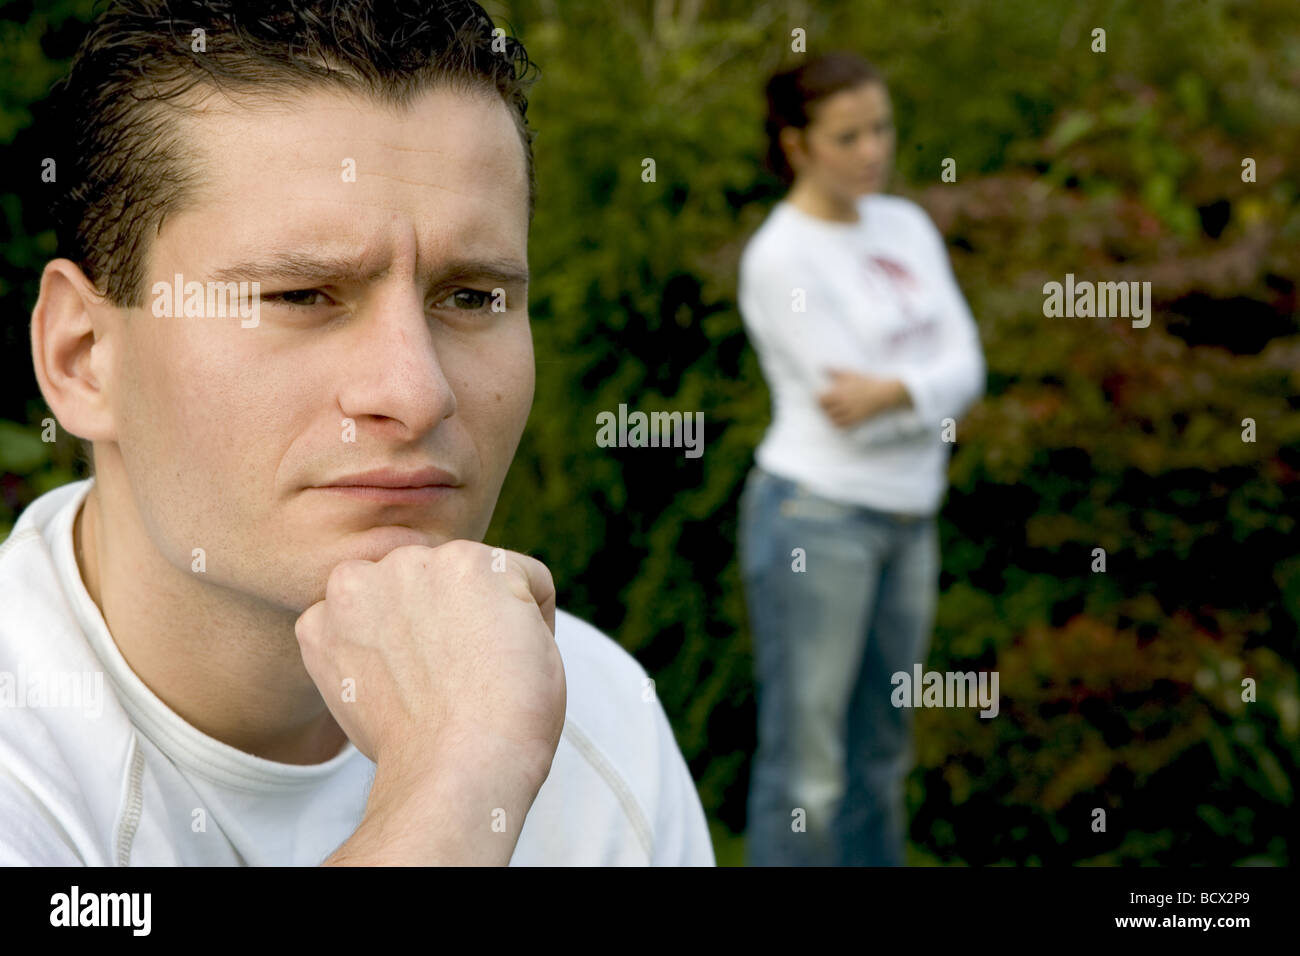 Marriage difficulties female and male stubborn face - Stock Image